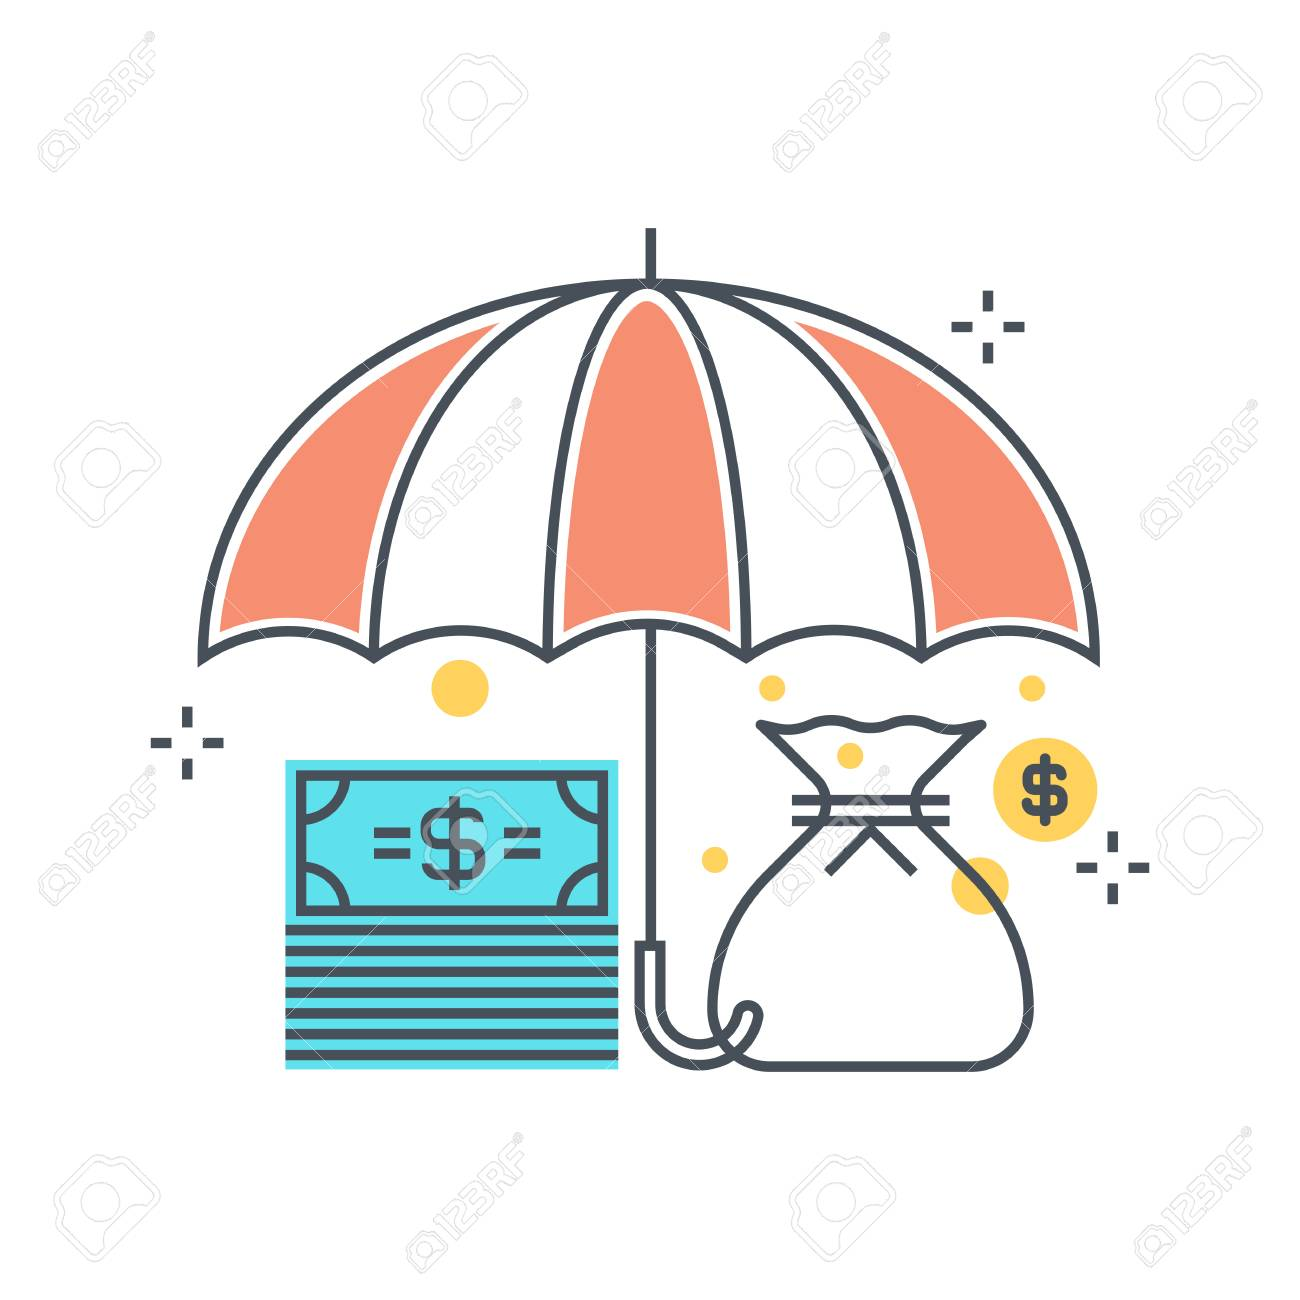 Color line, umbrella, insurance illustration, icon, background and graphics. The illustration is colorful, flat, pixel perfect, suitable for web and print. Linear stokes and fills. - 69209408